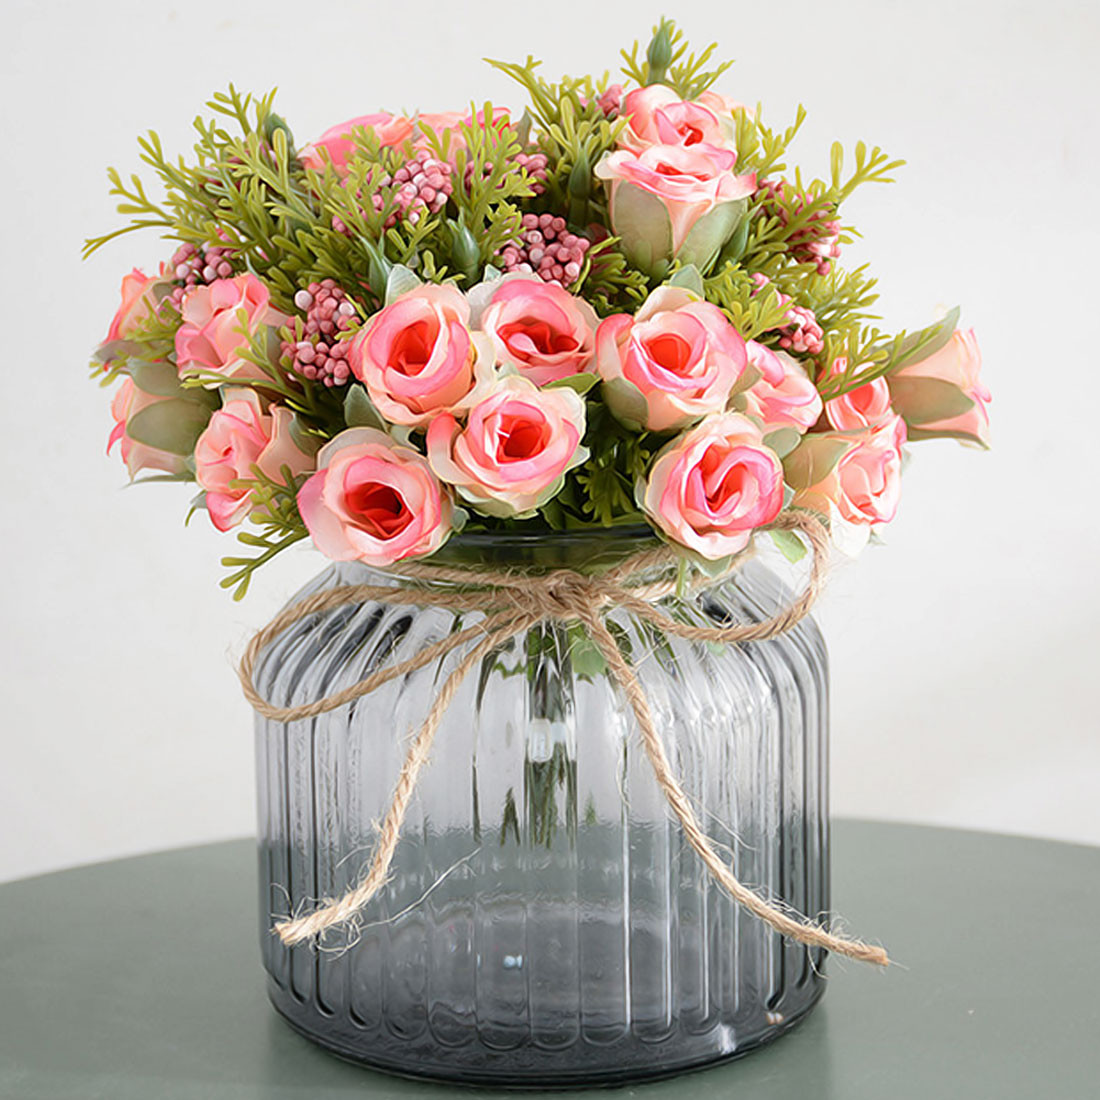 6 Inch Bud Vase Of Small Bud Silk Roses Simulation Flowers Artificial Flowers 13 Heads for total Width20cm 1cm0 4 Inch